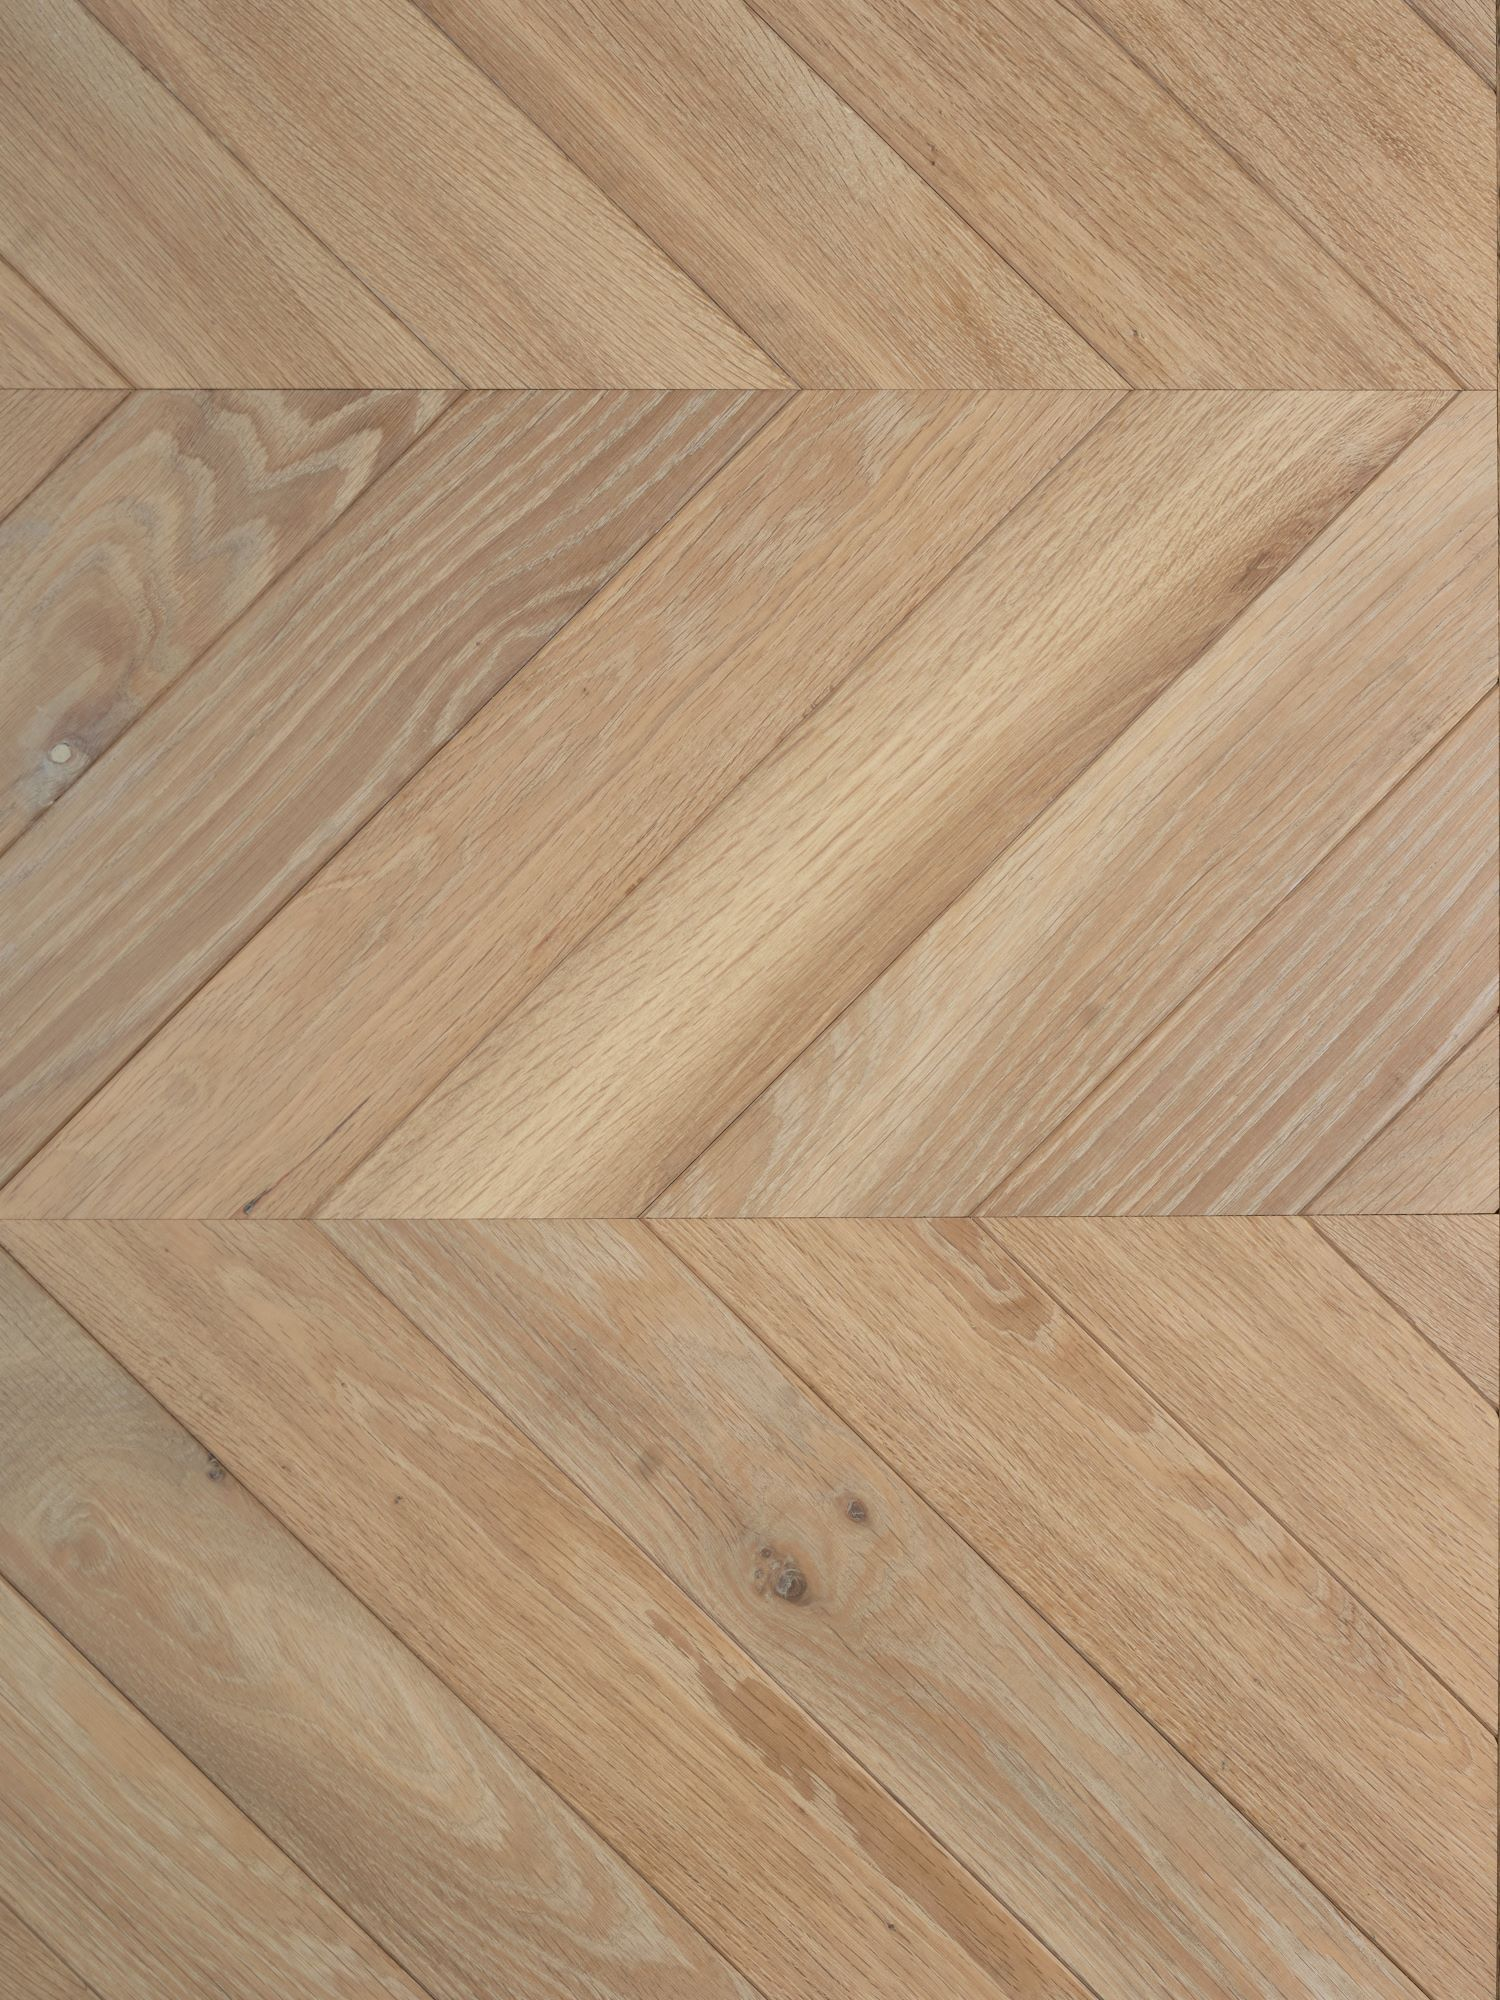 Light oak chevron flooring landmark saltram